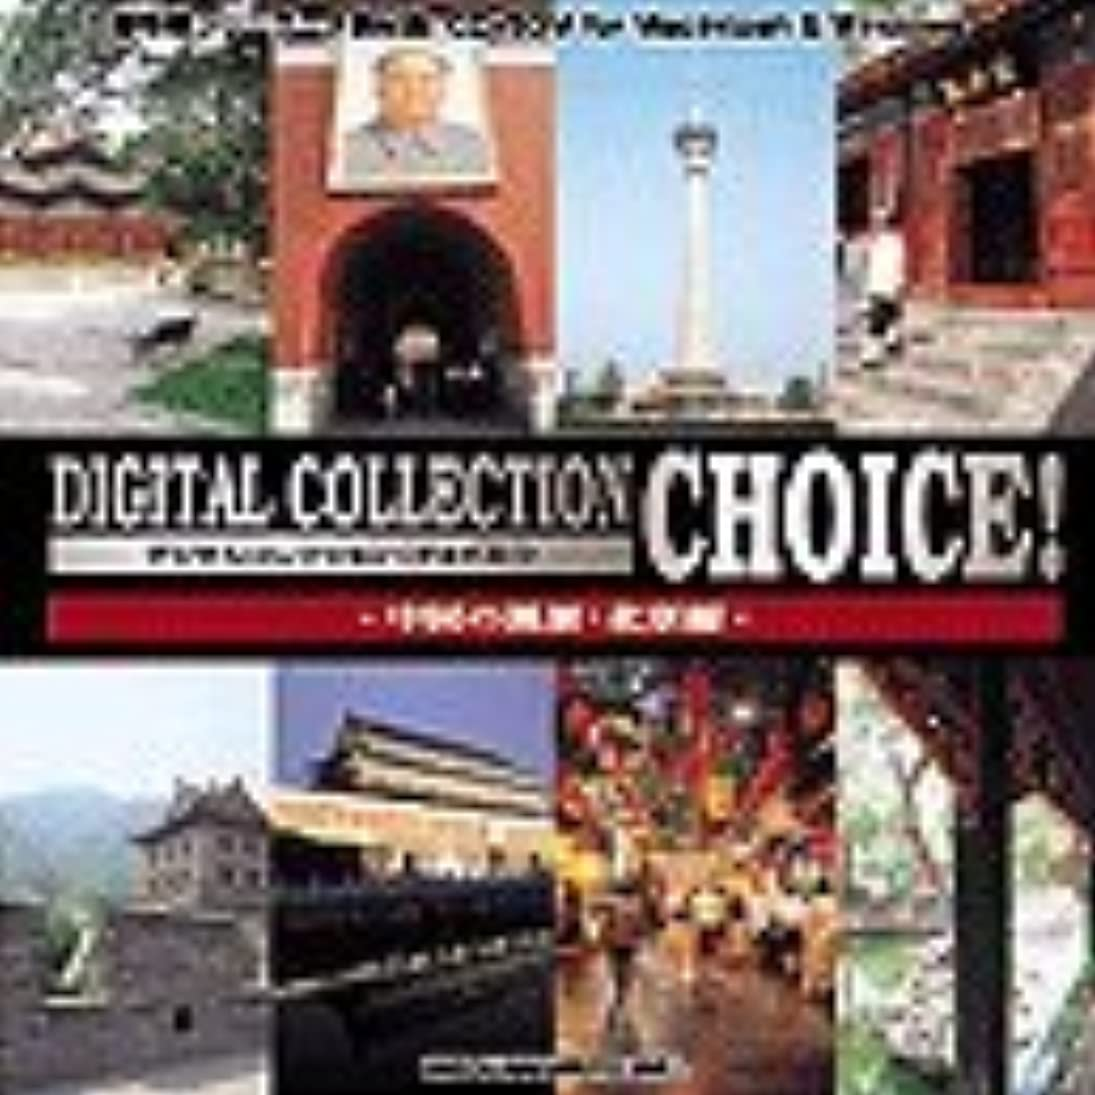 Digital Collection Choice! 中国の風景?北京編